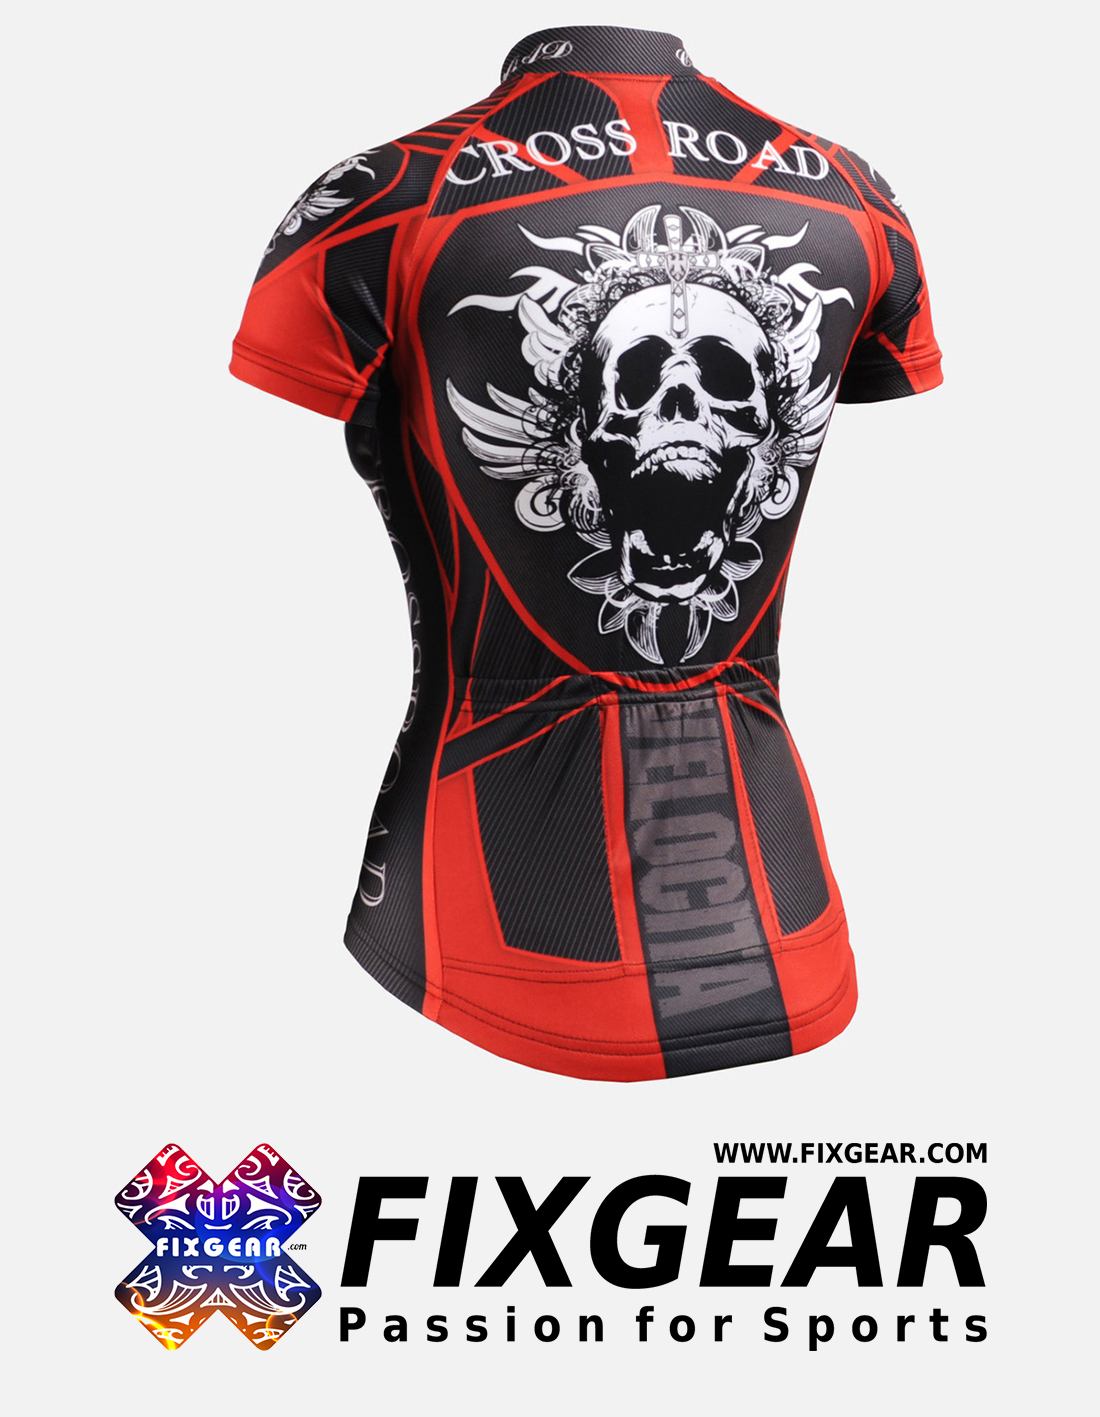 FIXGEAR CS-W1302 Women's Short Sleeve Jersey